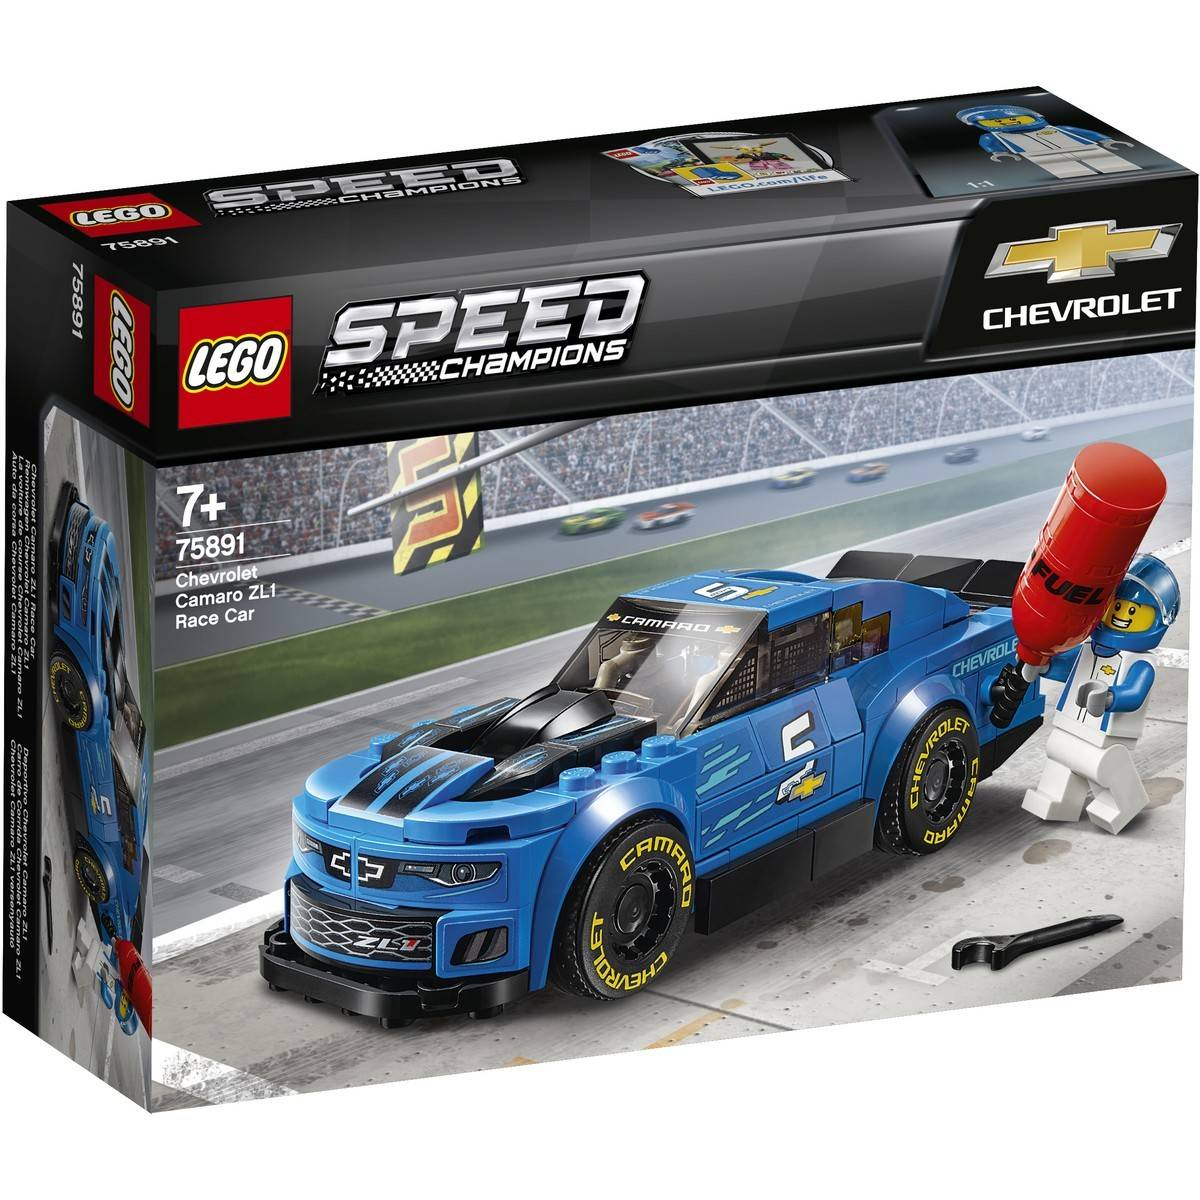 Stroller Car Race Lego Speed Champions Chevrolet Camaro Zl1 Race Car 75891